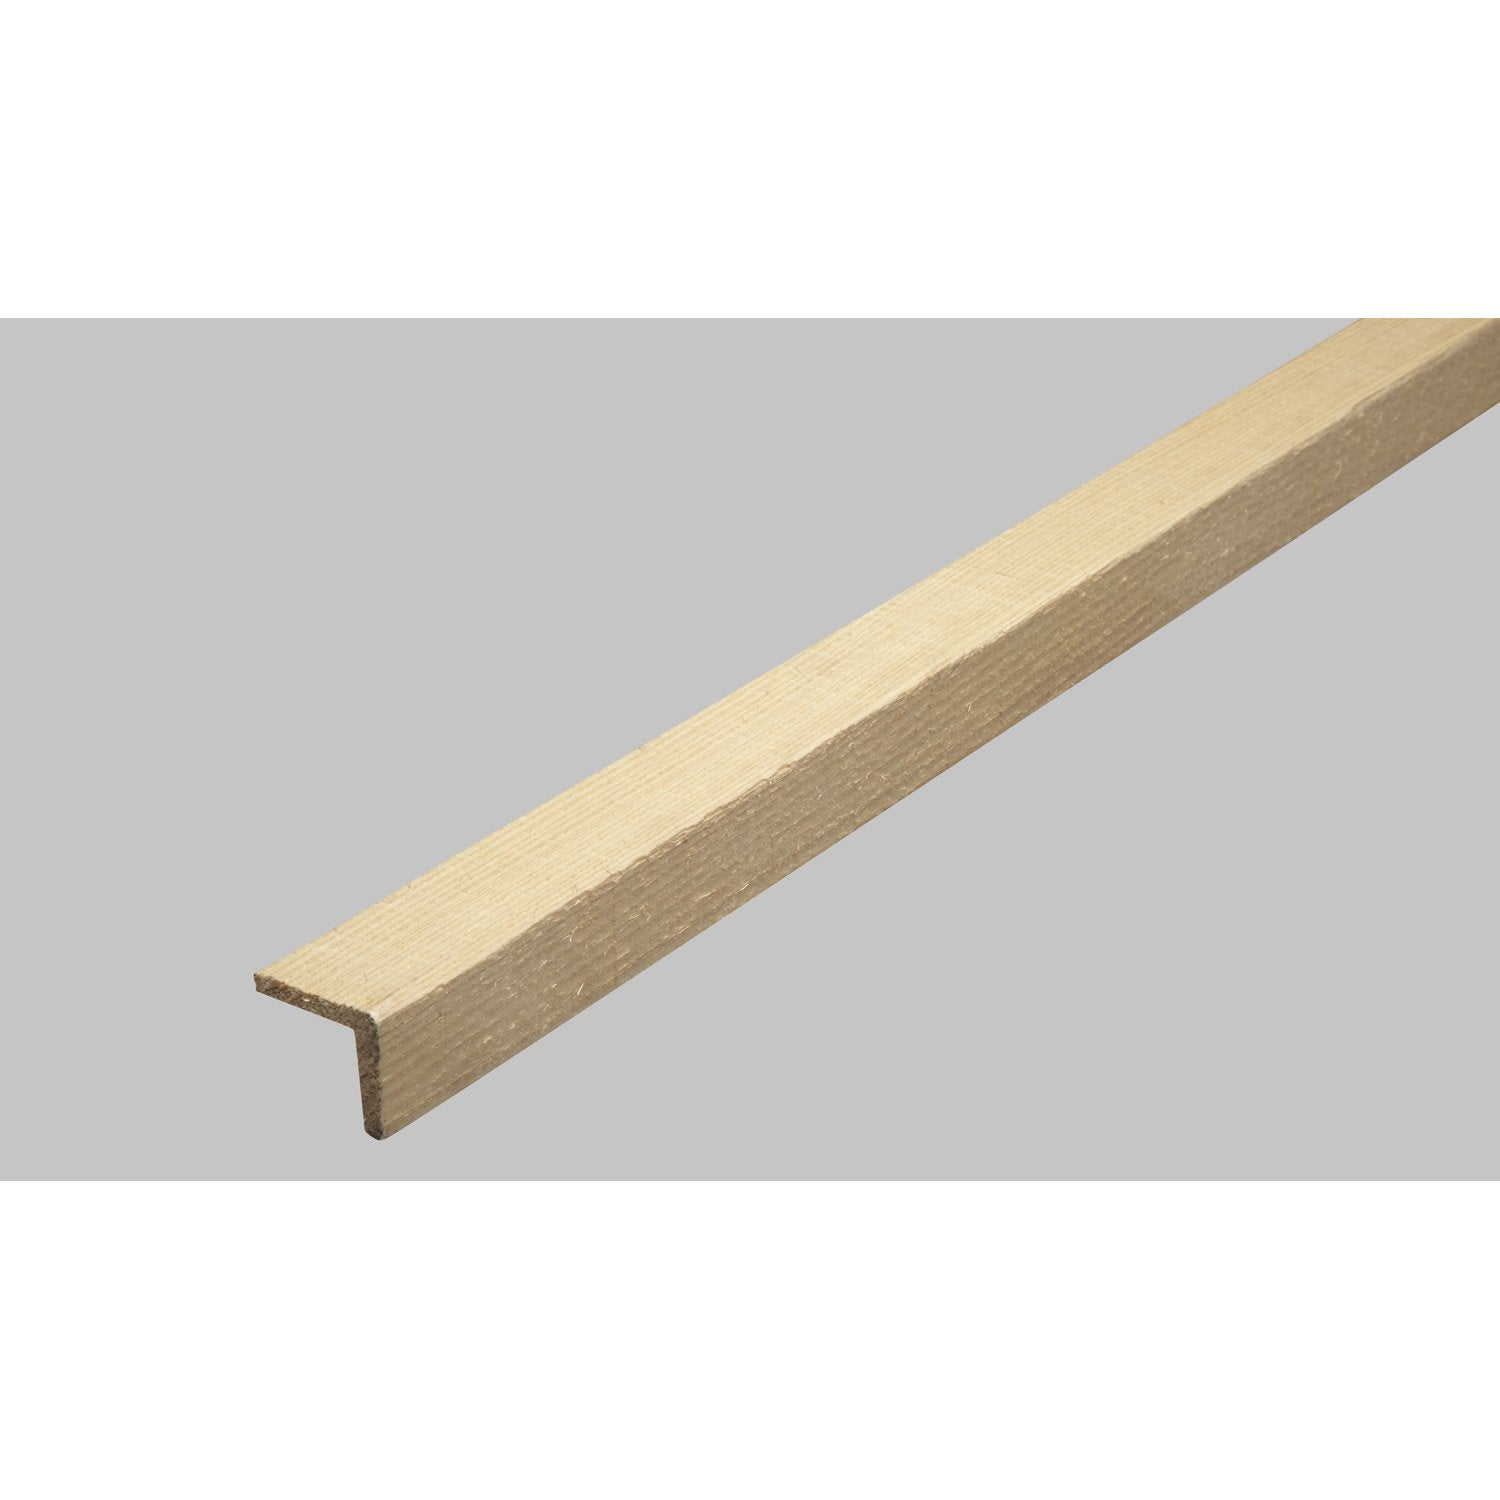 Baguette d 39 angle en sapin long 250cm section for Angle rentrant carrelage mural